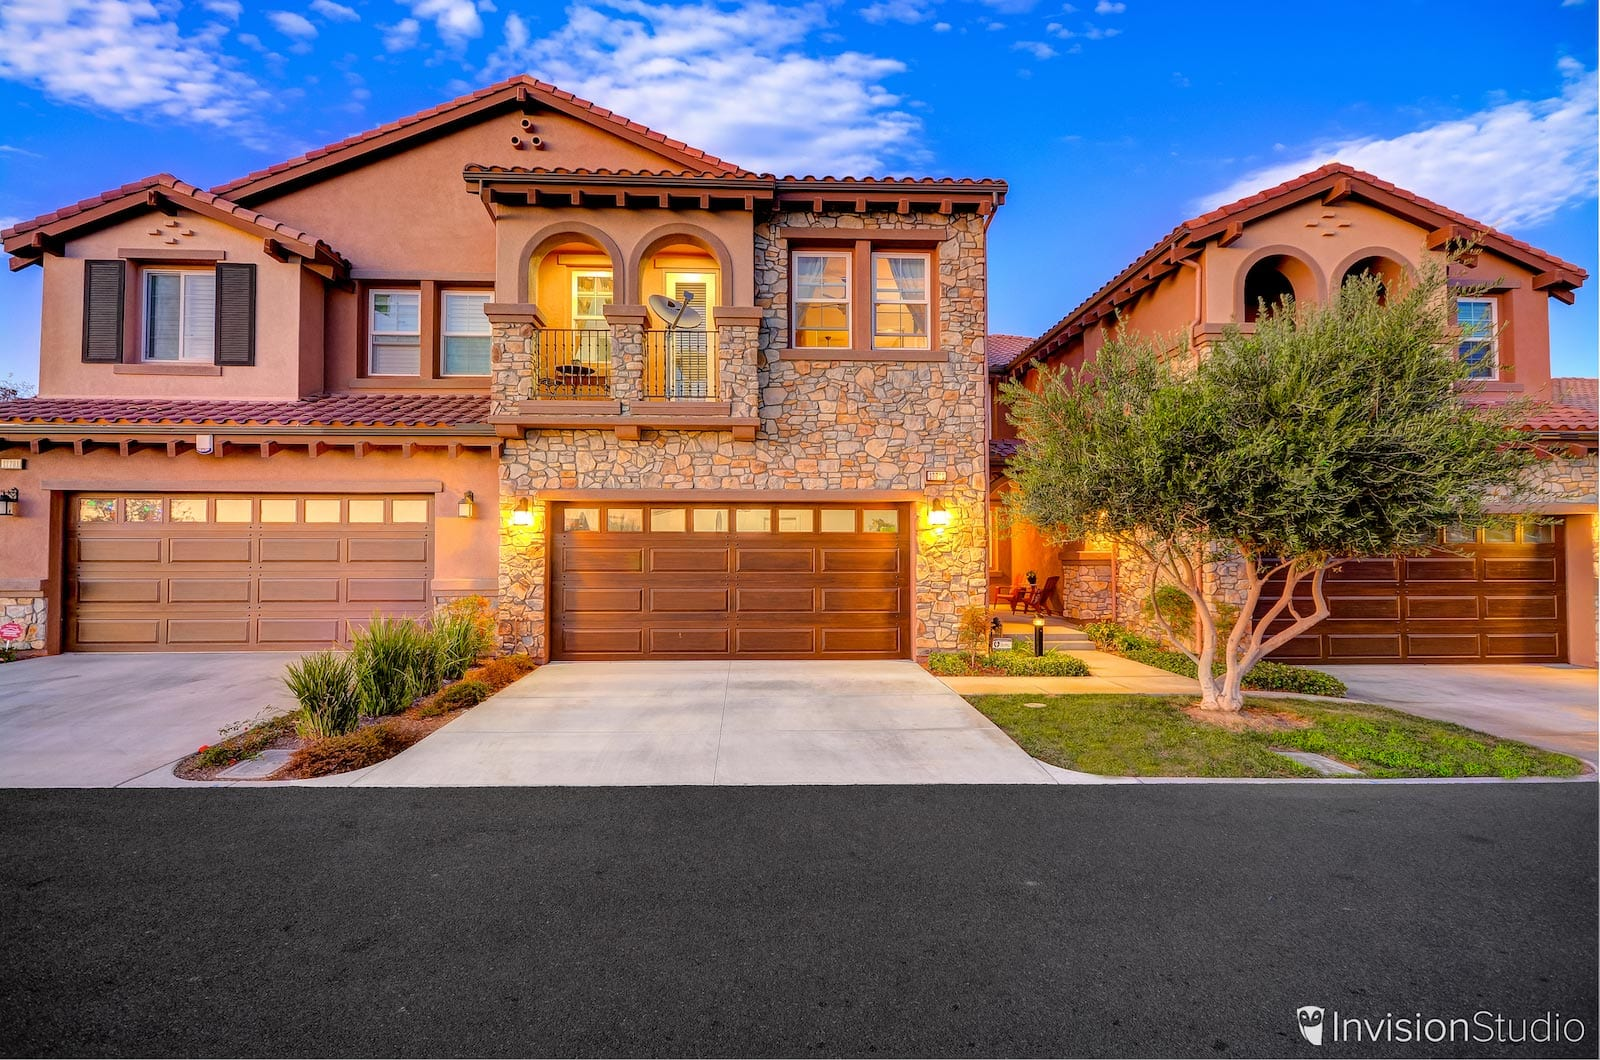 Carlsbad California Real Estate Photography | Carlsbad San Diego Virtual Tour Photographer | Carlsbad Virtual Tour Photographer